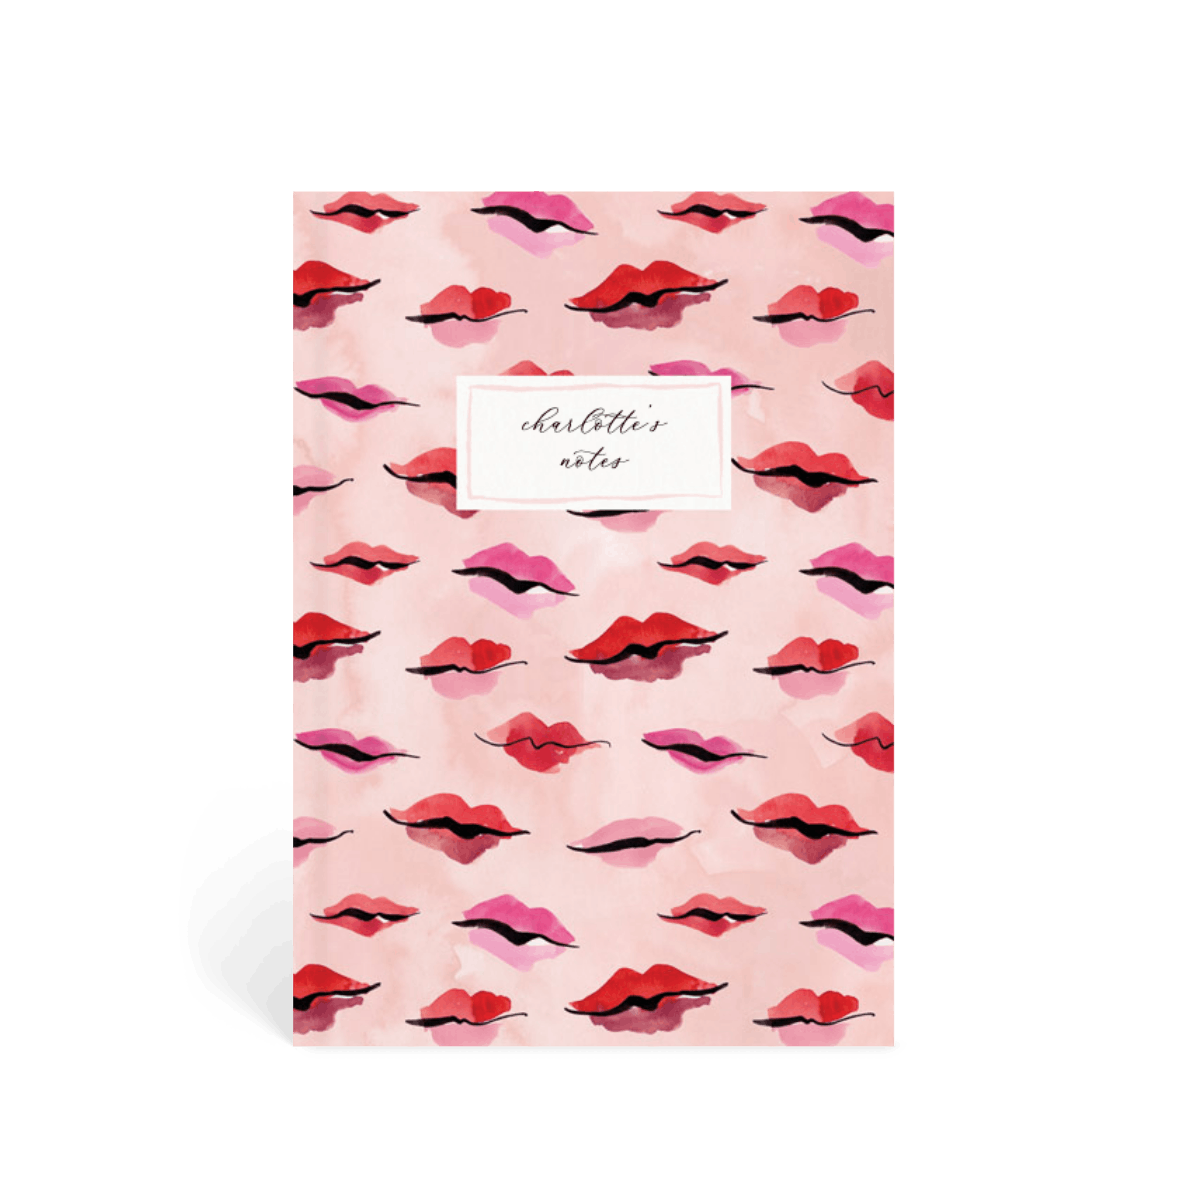 Https%3a%2f%2fwww.papier.com%2fproduct image%2f99450%2f25%2flips lips lips 25366 front 1583324322.png?ixlib=rb 1.1